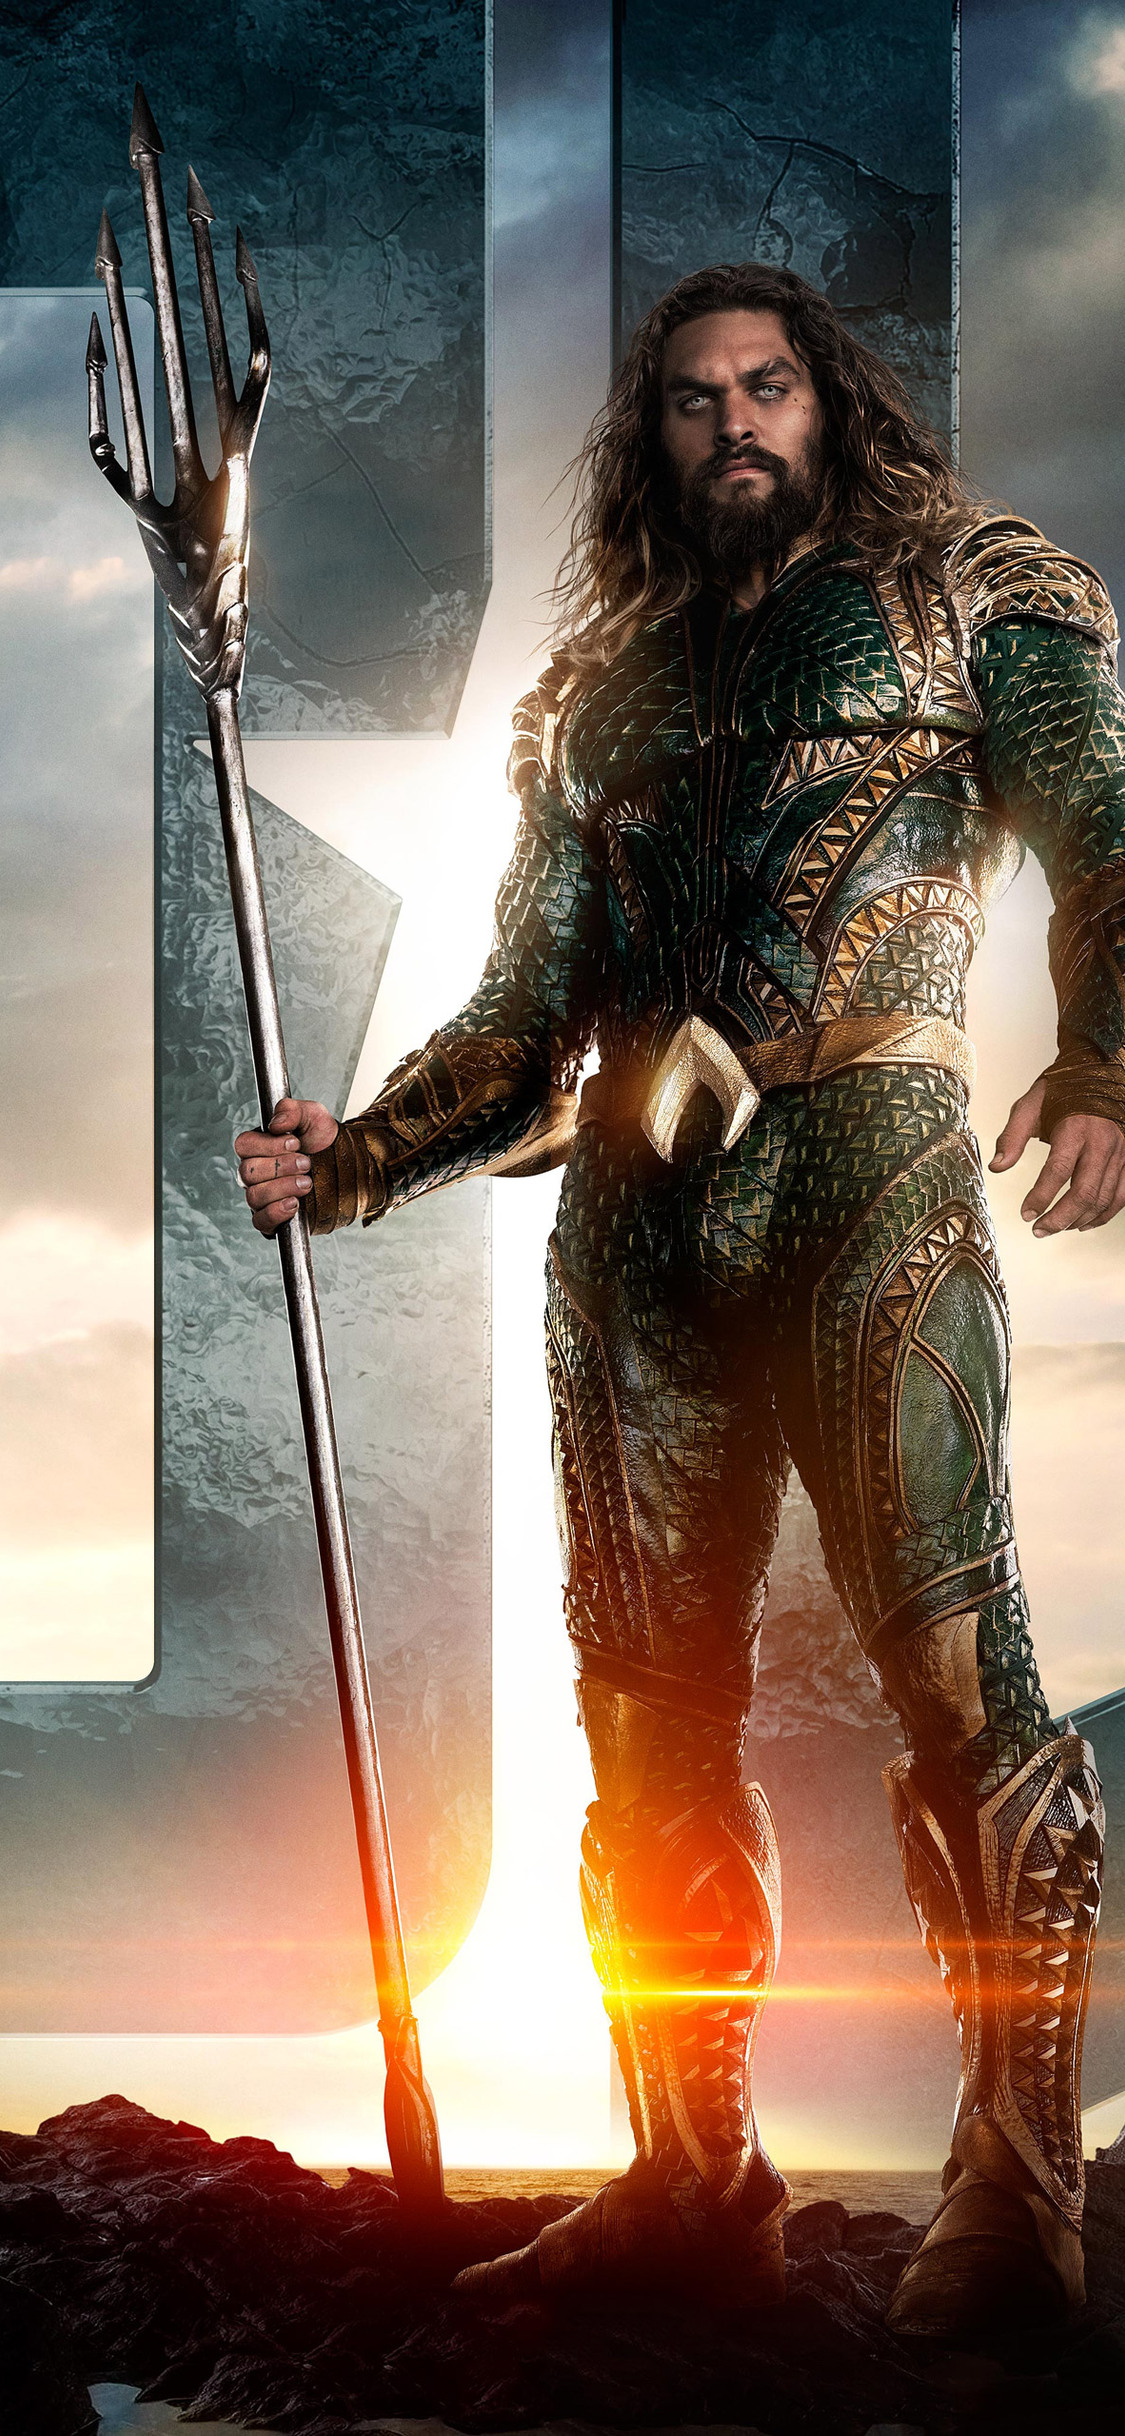 jason-momoa-as-aquaman-in-justice-league-on.jpg